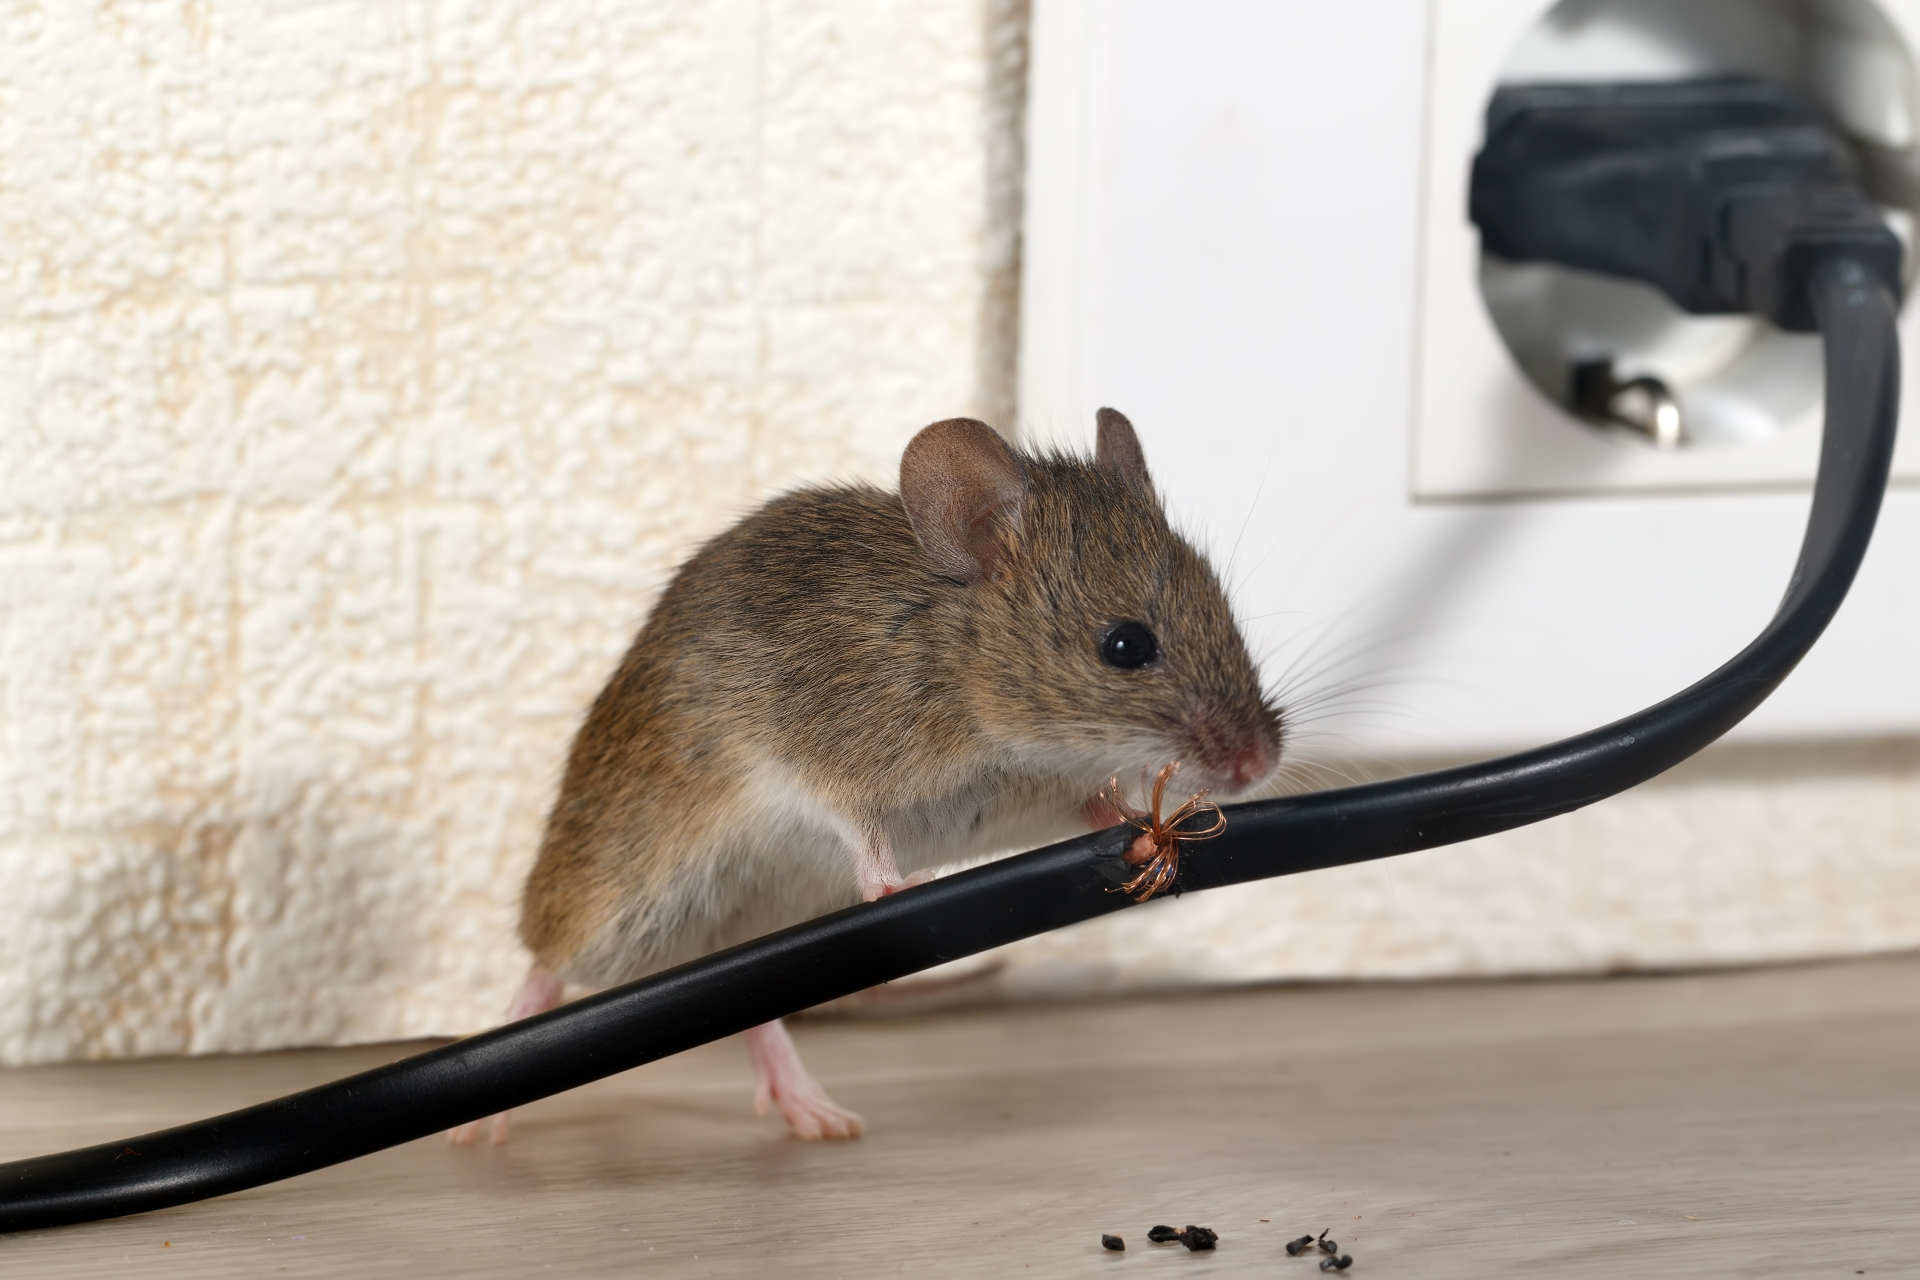 Mice Infestation, Pest Control in North Feltham, East Bedfont, TW14. Call Now 020 8166 9746